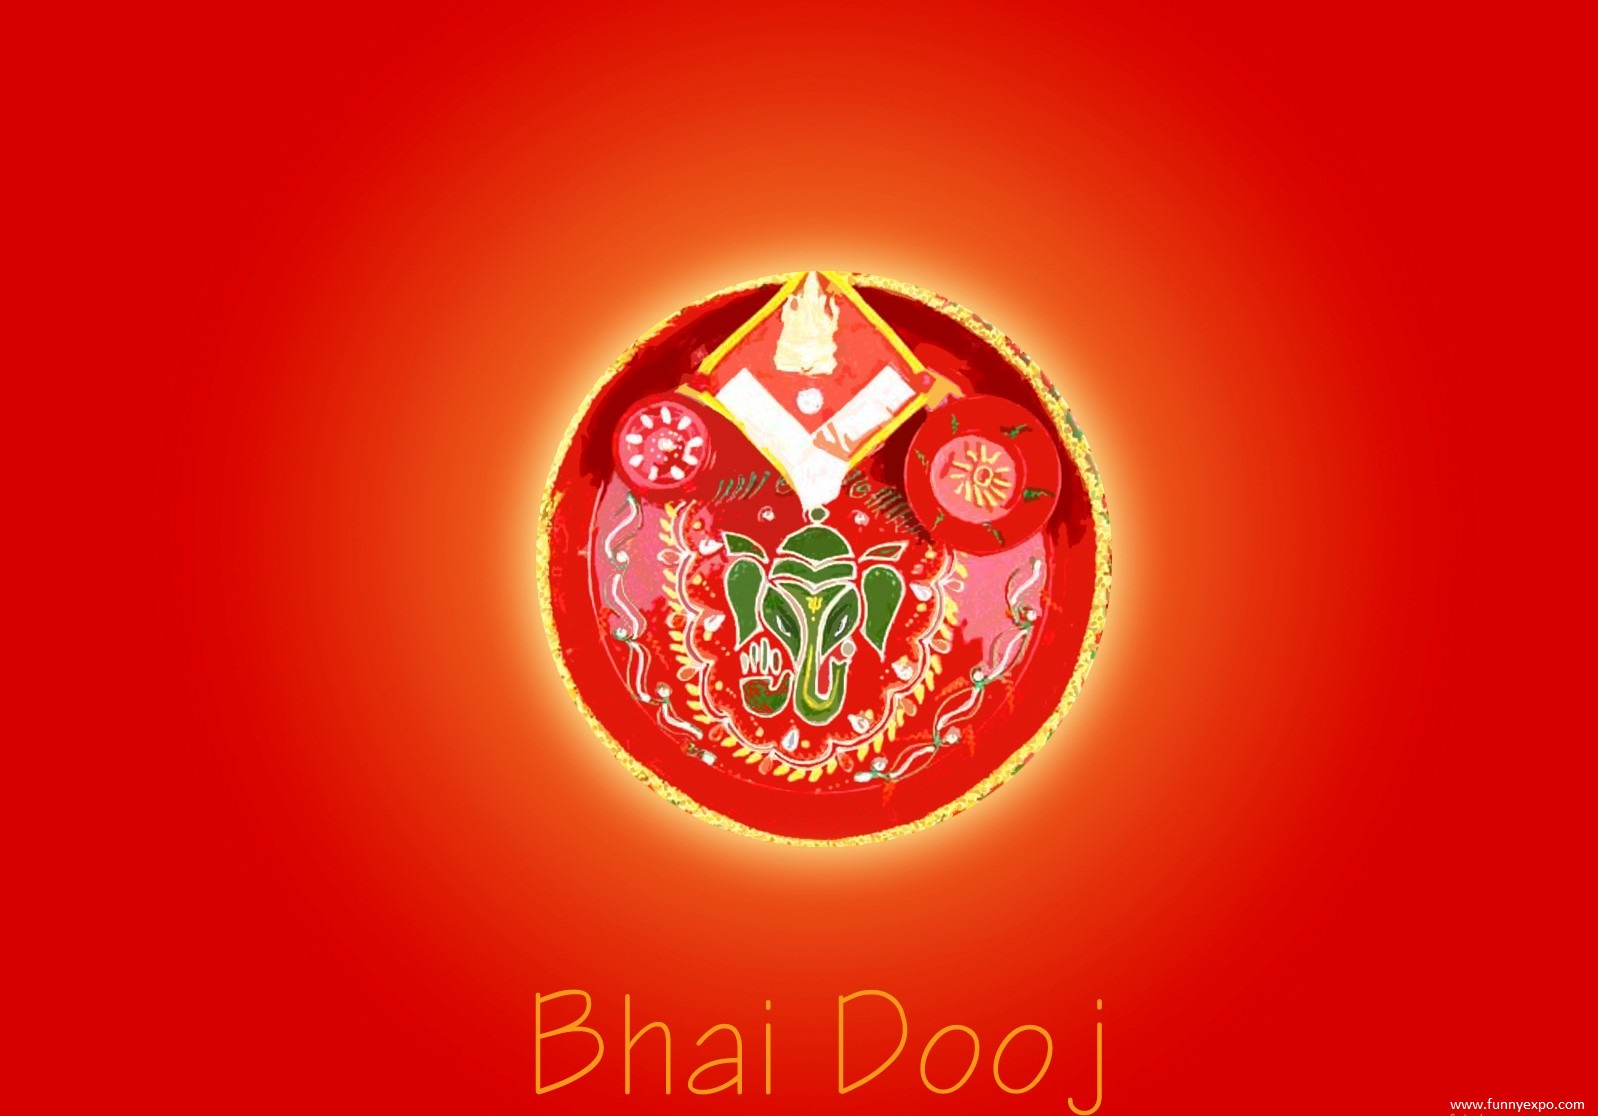 50 beautiful happy bhai dooj wishes pictures and images funnyexpo beautiful happy bhai dooj picture kristyandbryce Images